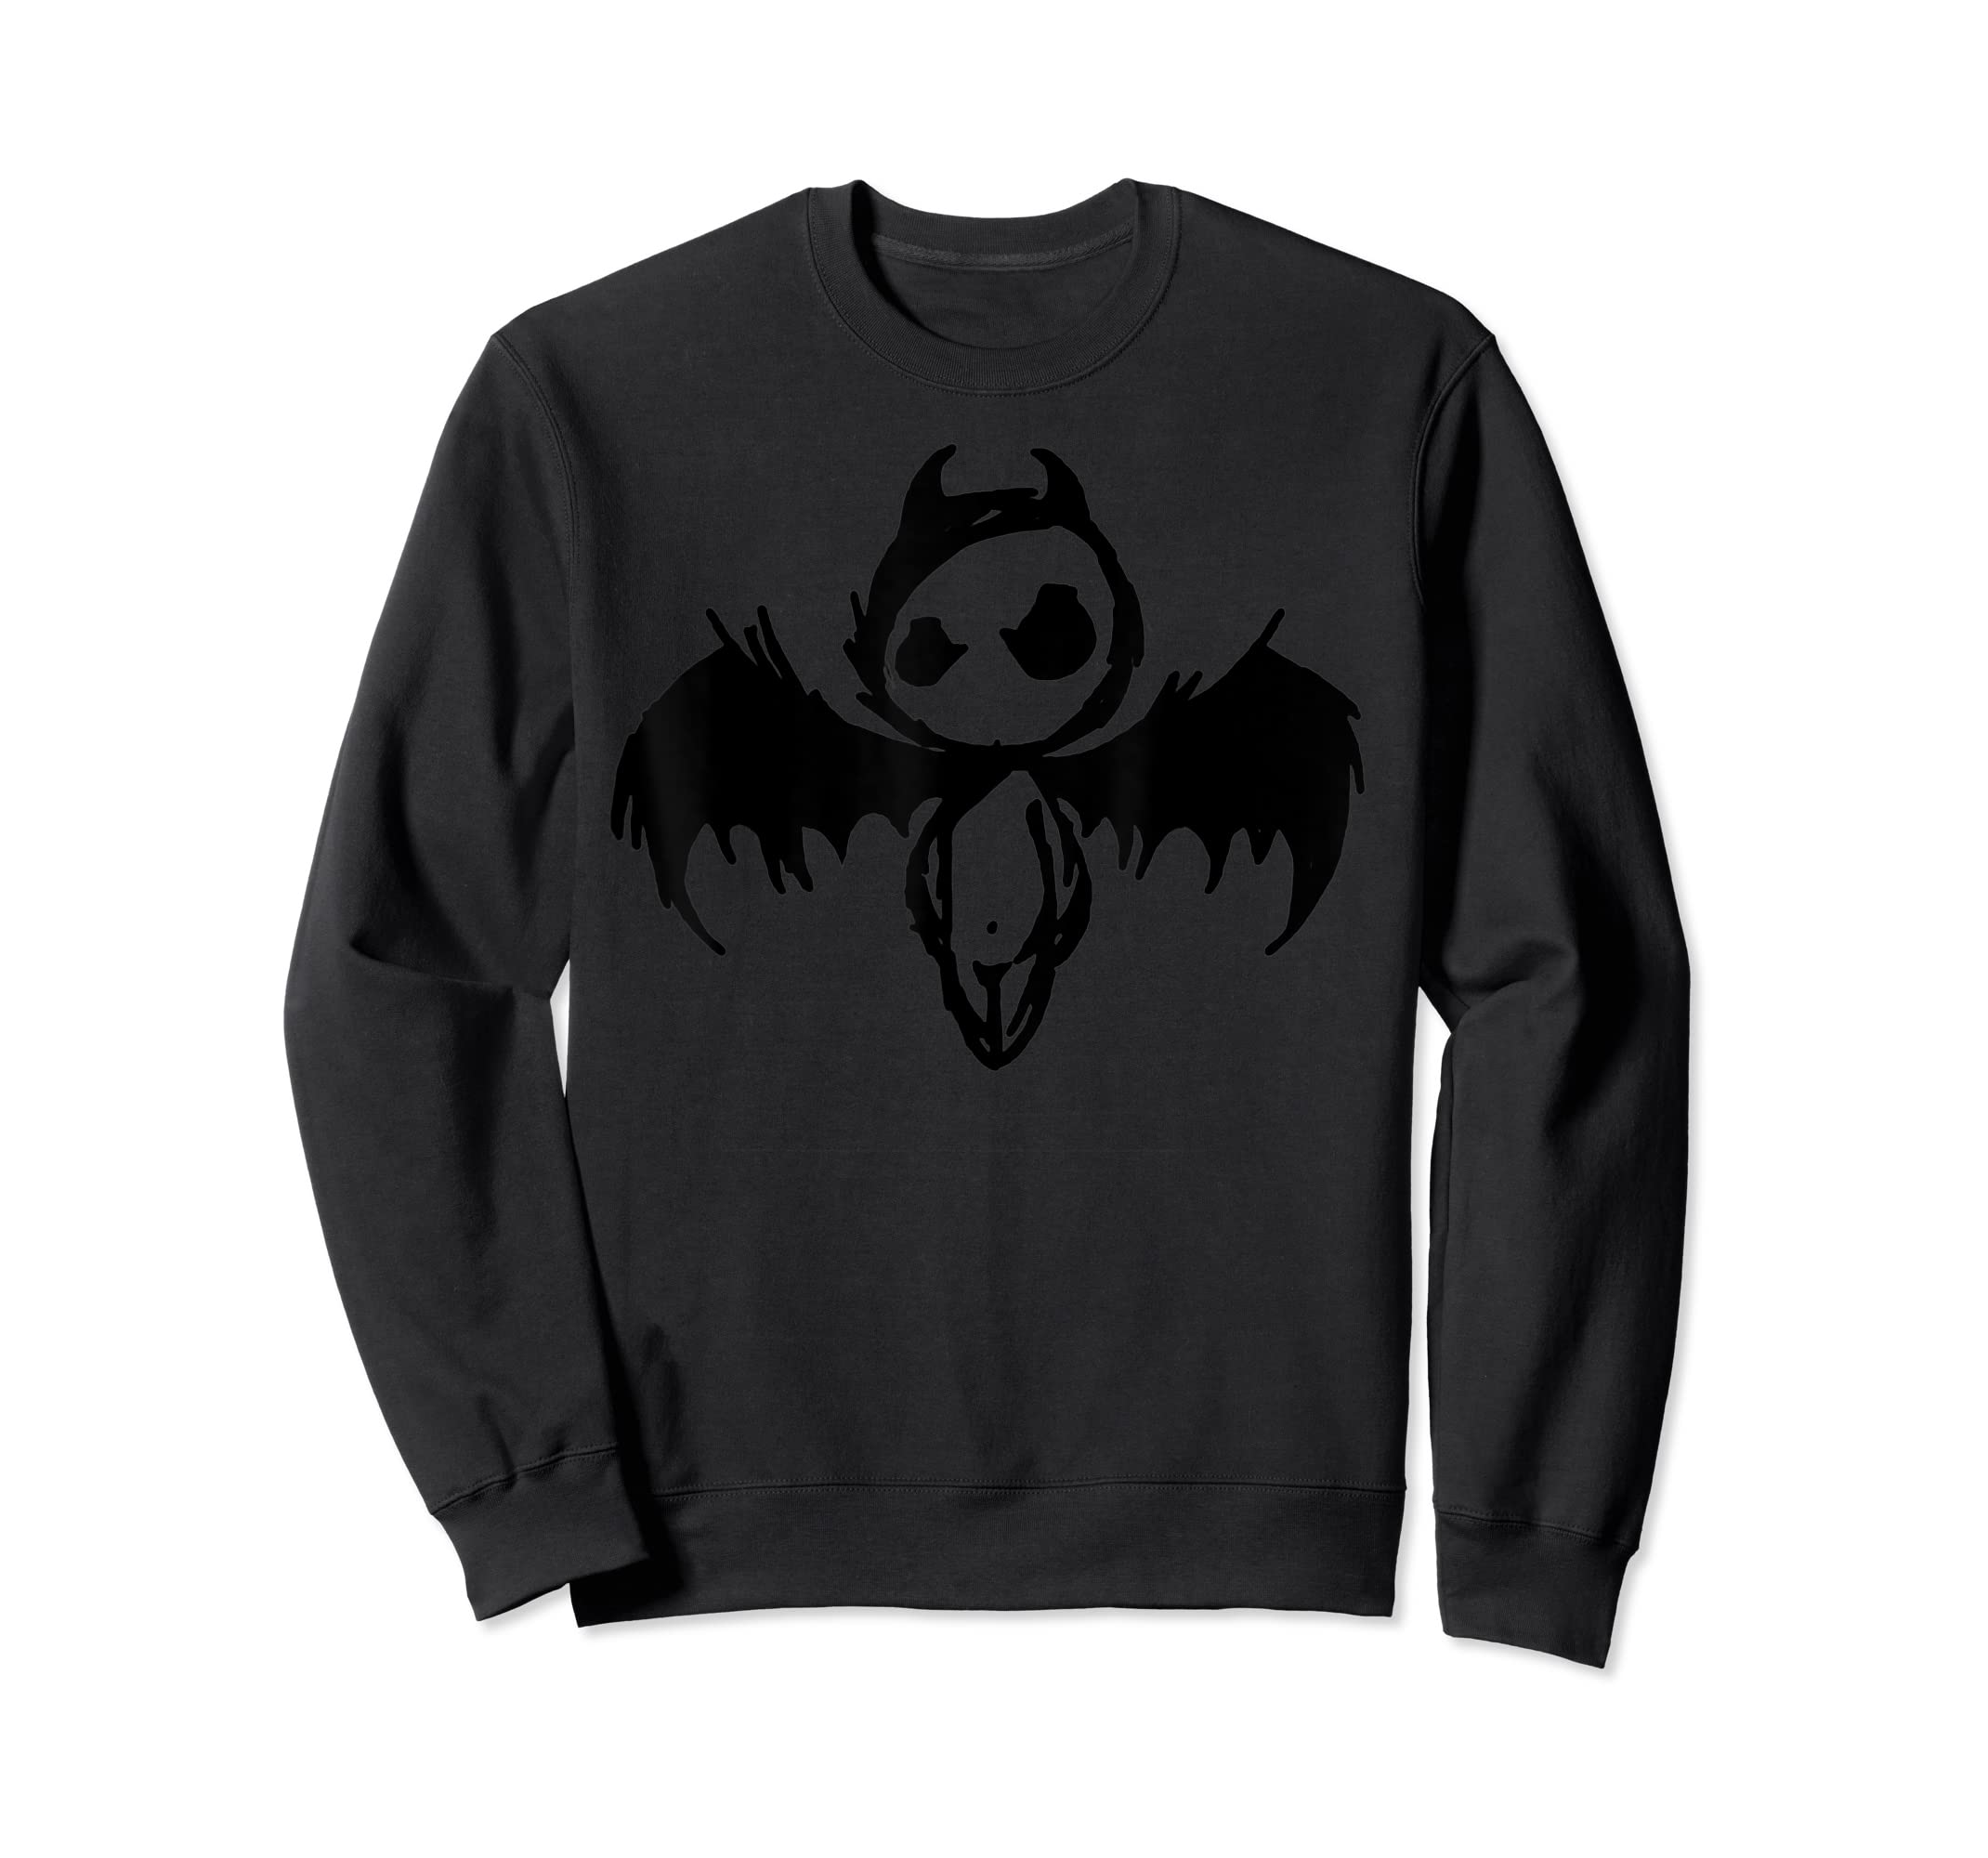 Cute Demon Vintage Couple Matching Halloween Party Costume  T-Shirt-Sweatshirt-Black